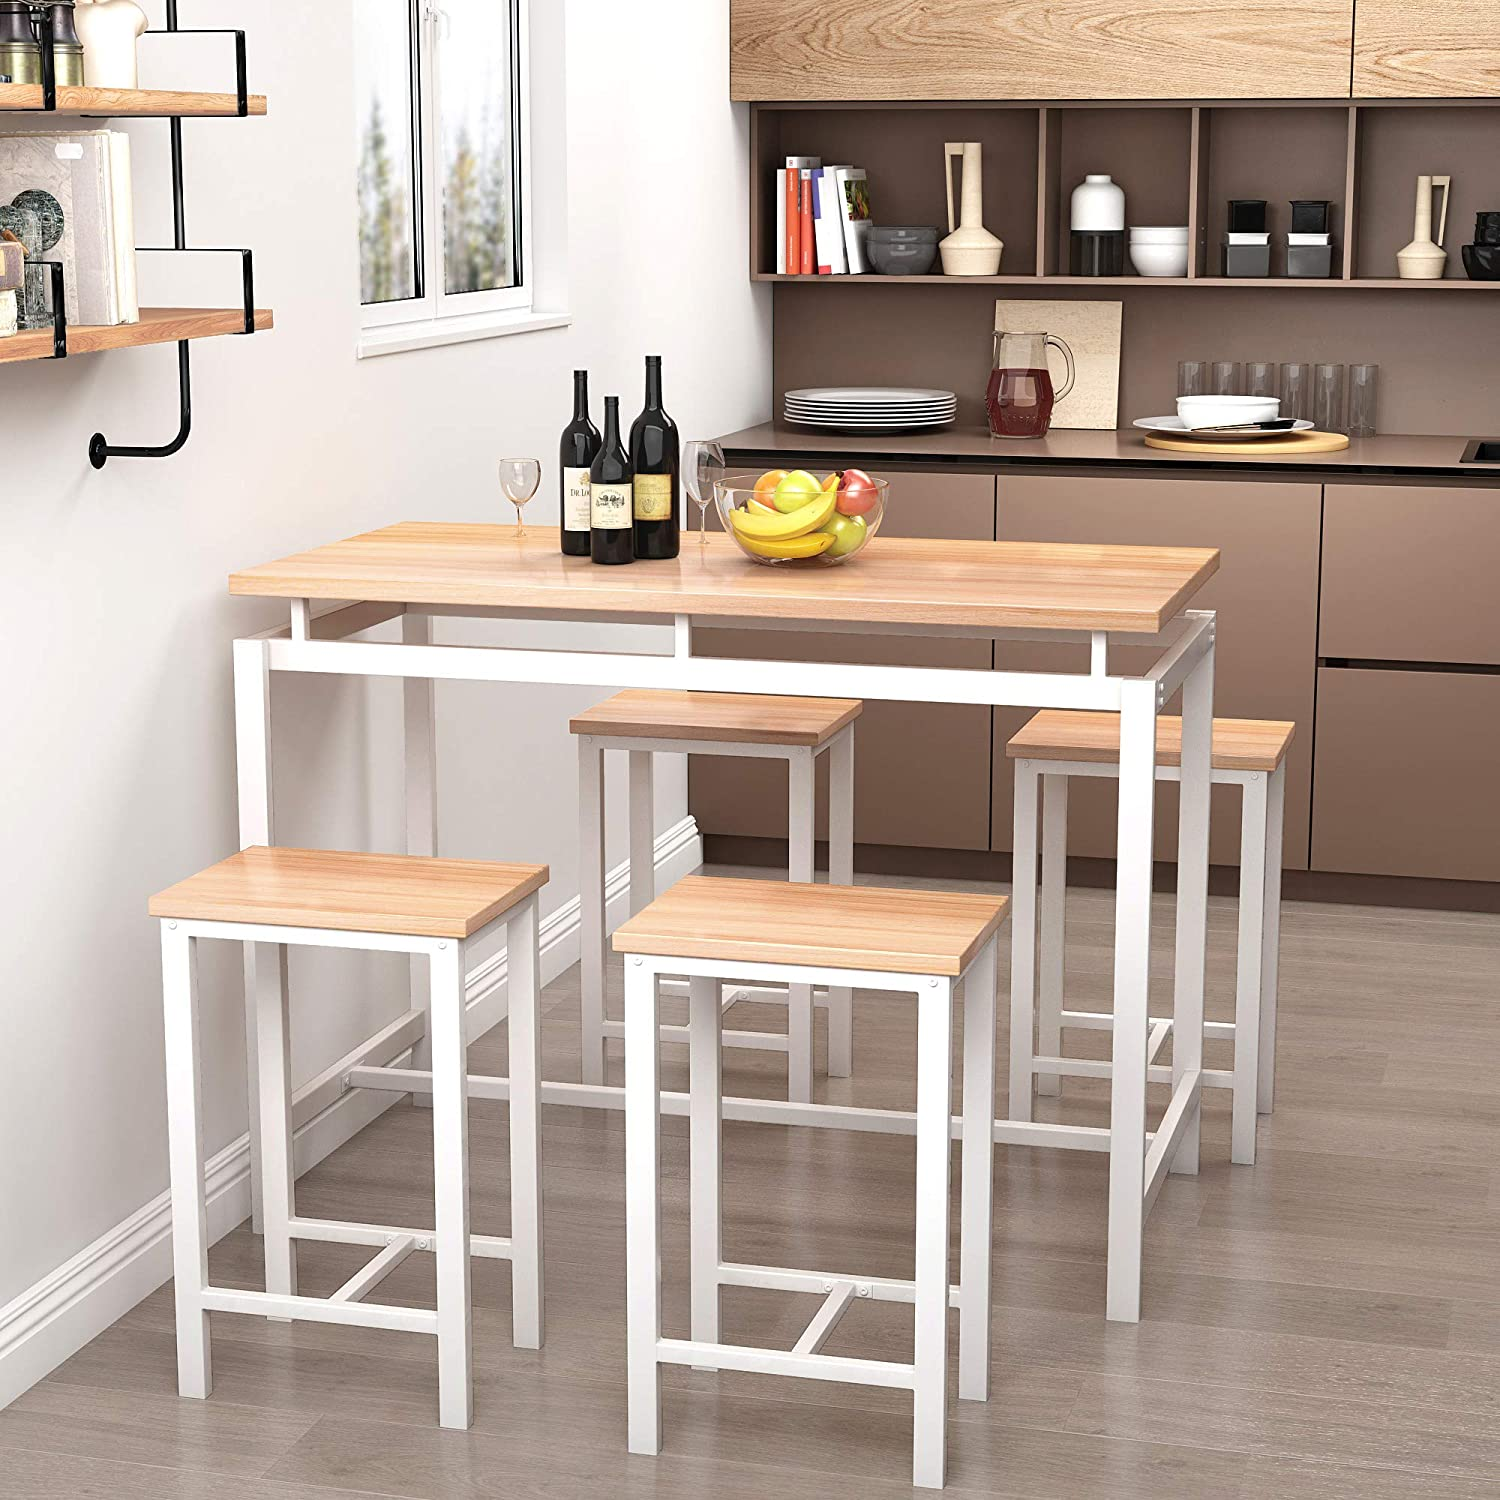 Recaceik 12 PCS Dining Table Set, Modern Kitchen Table and Chairs for 12,  Wood Pub Bar Table Set Perfect for Breakfast Nook, Small Space Living Room